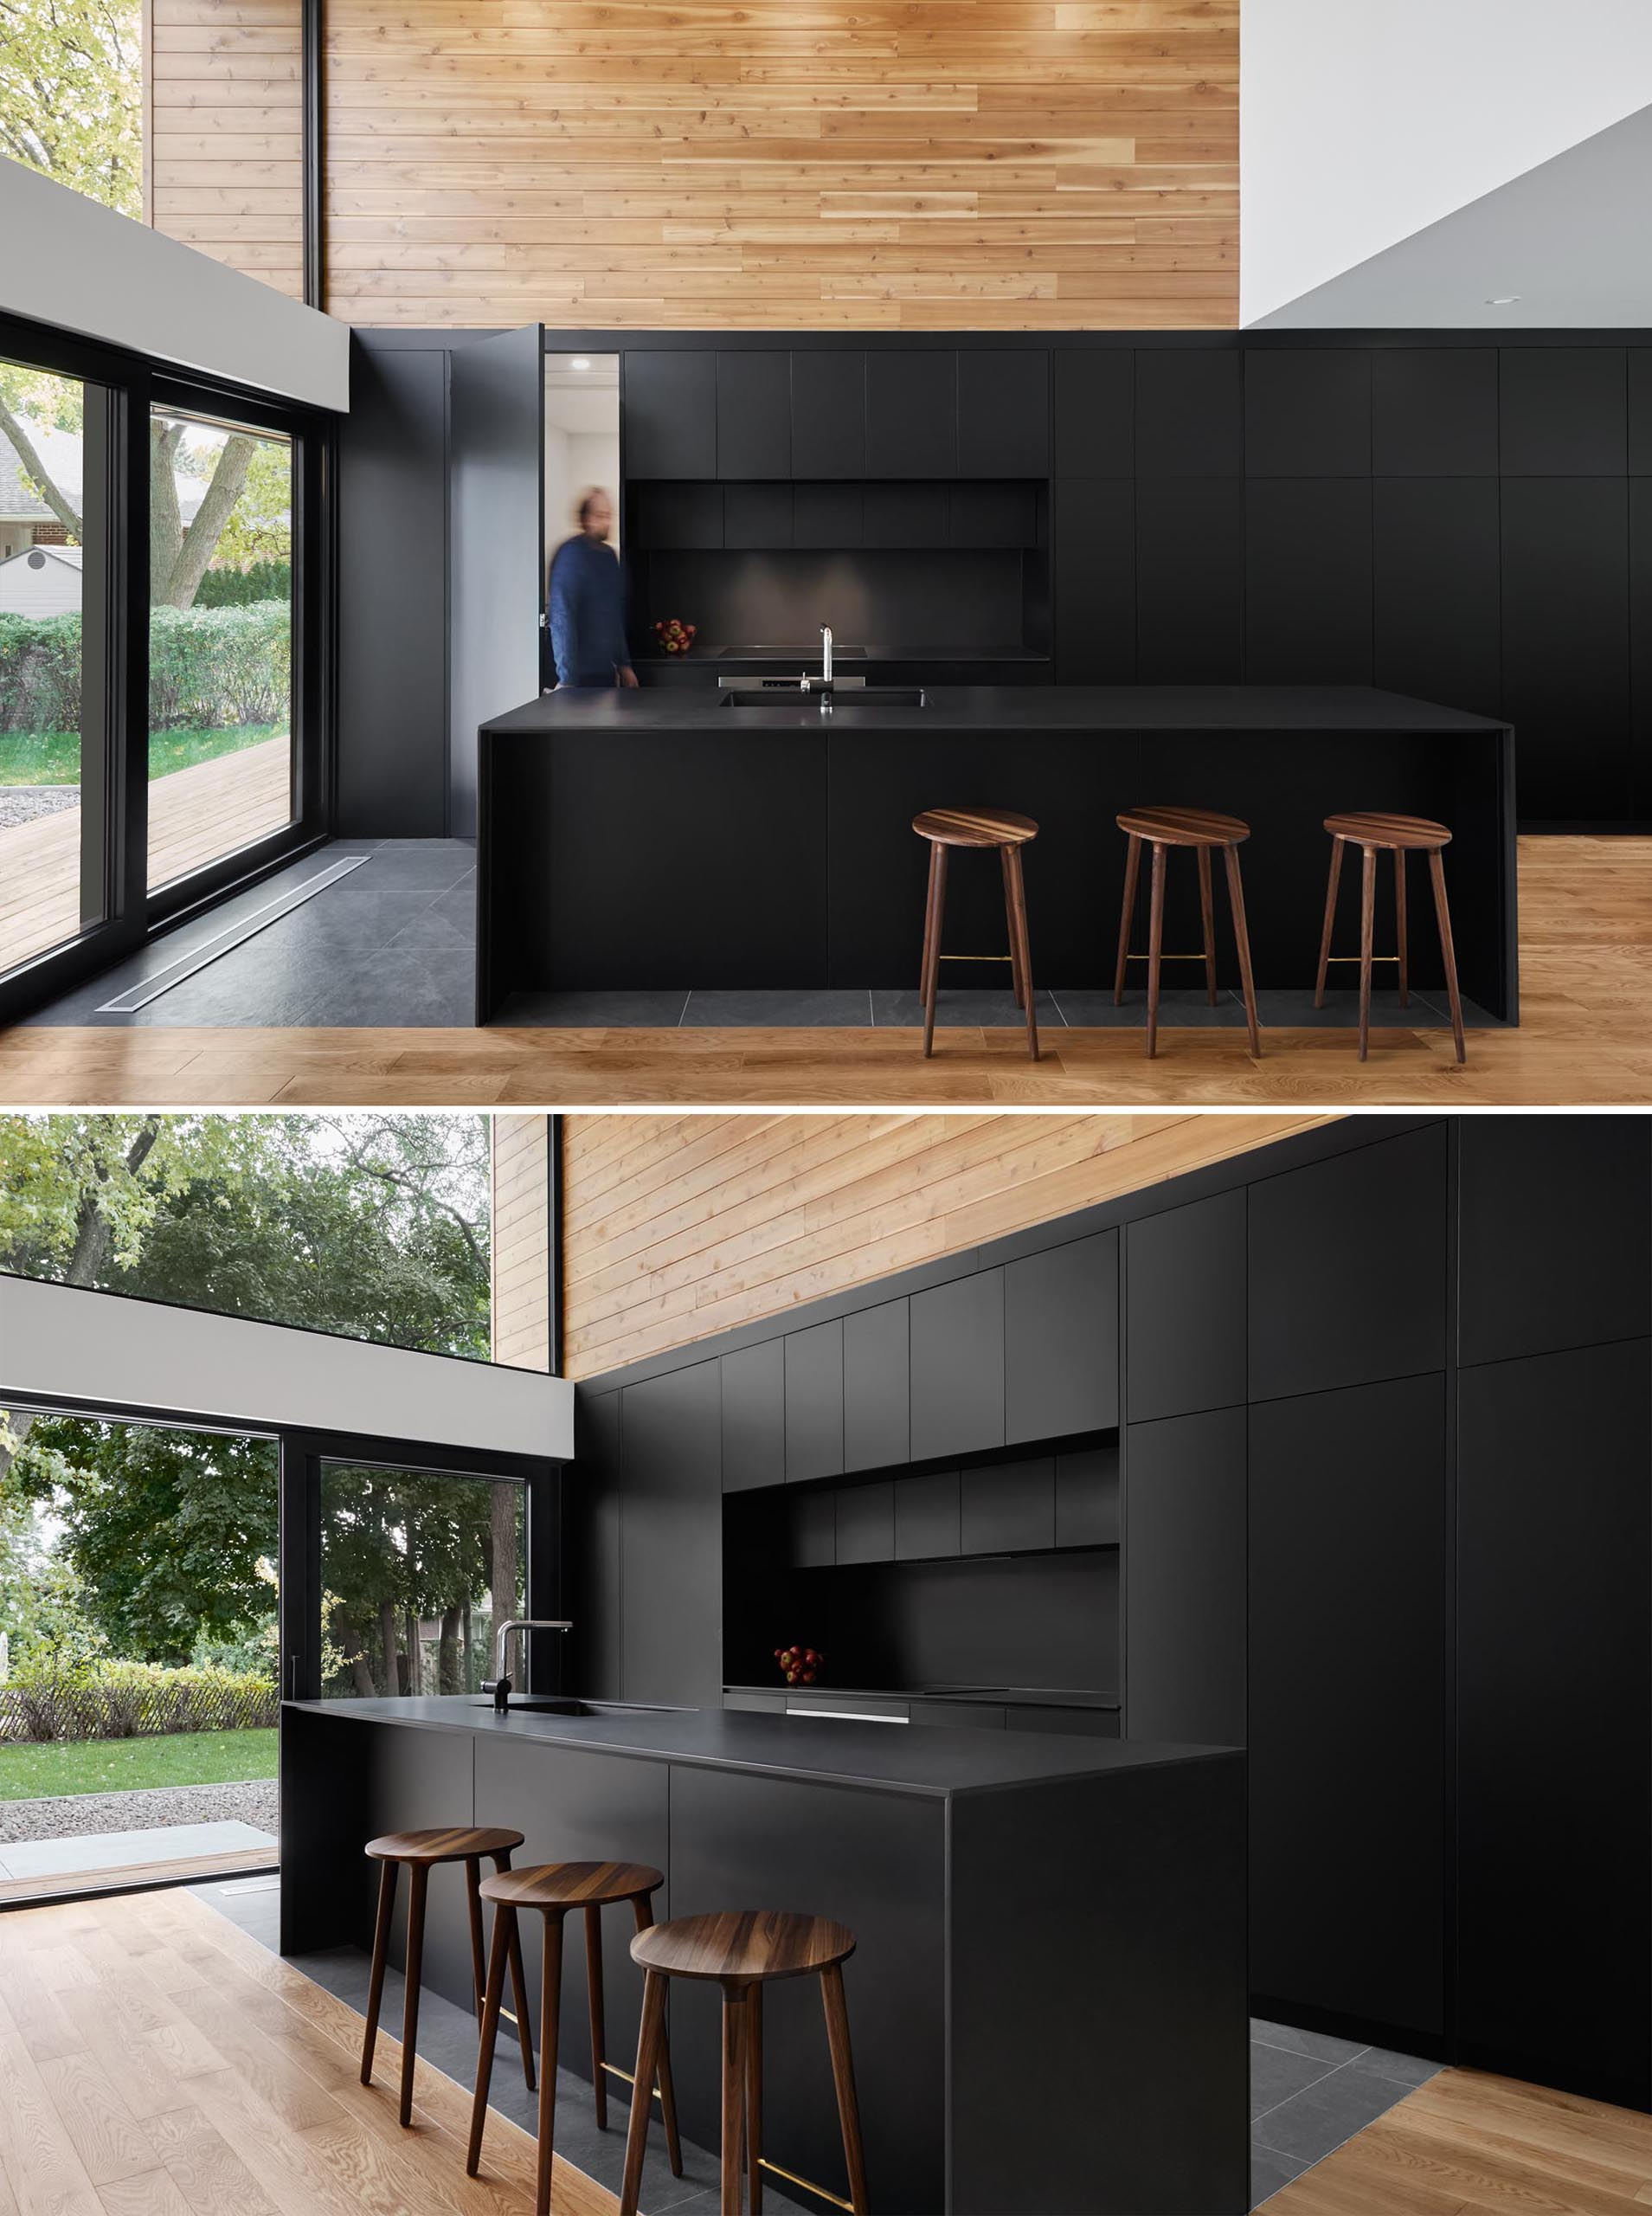 MXMA Architecture & Design designed the remodel of a home in Montreal, Canada, and included in the renovation is a matte black kitchen.